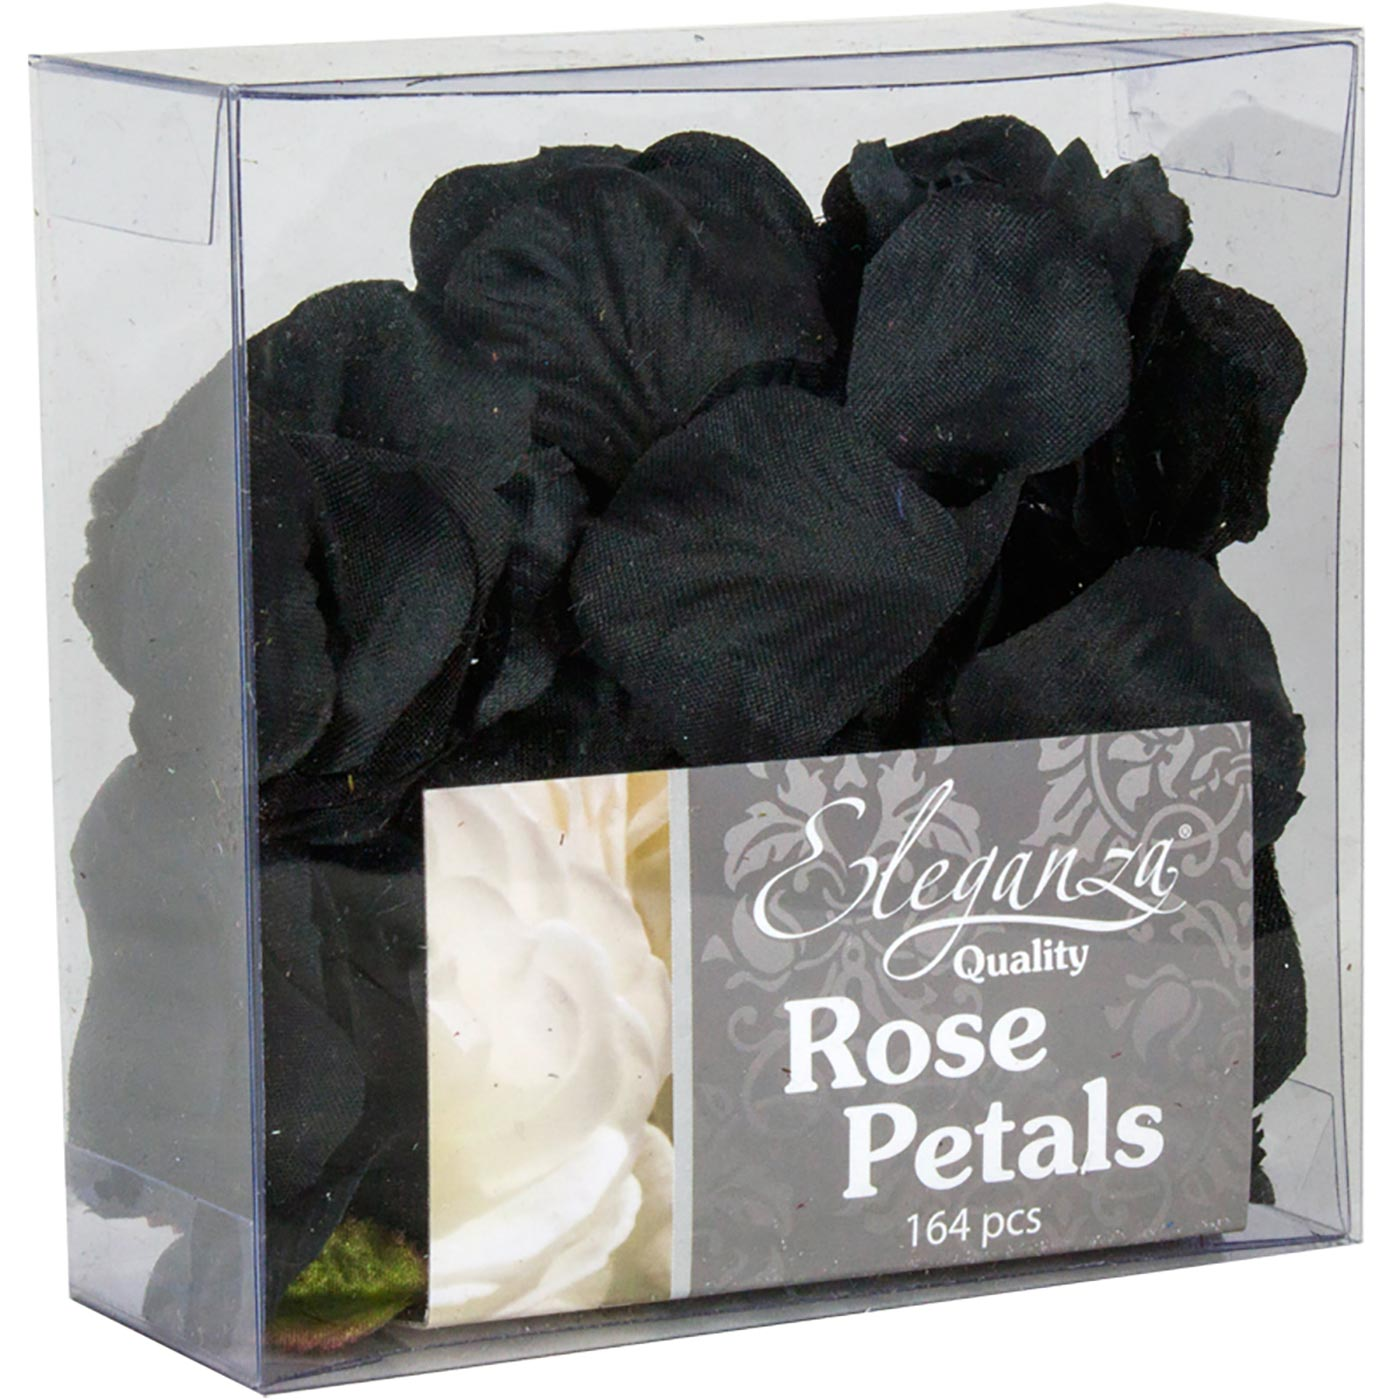 Eleganza Rose Petals Acetate box 164pcs Black